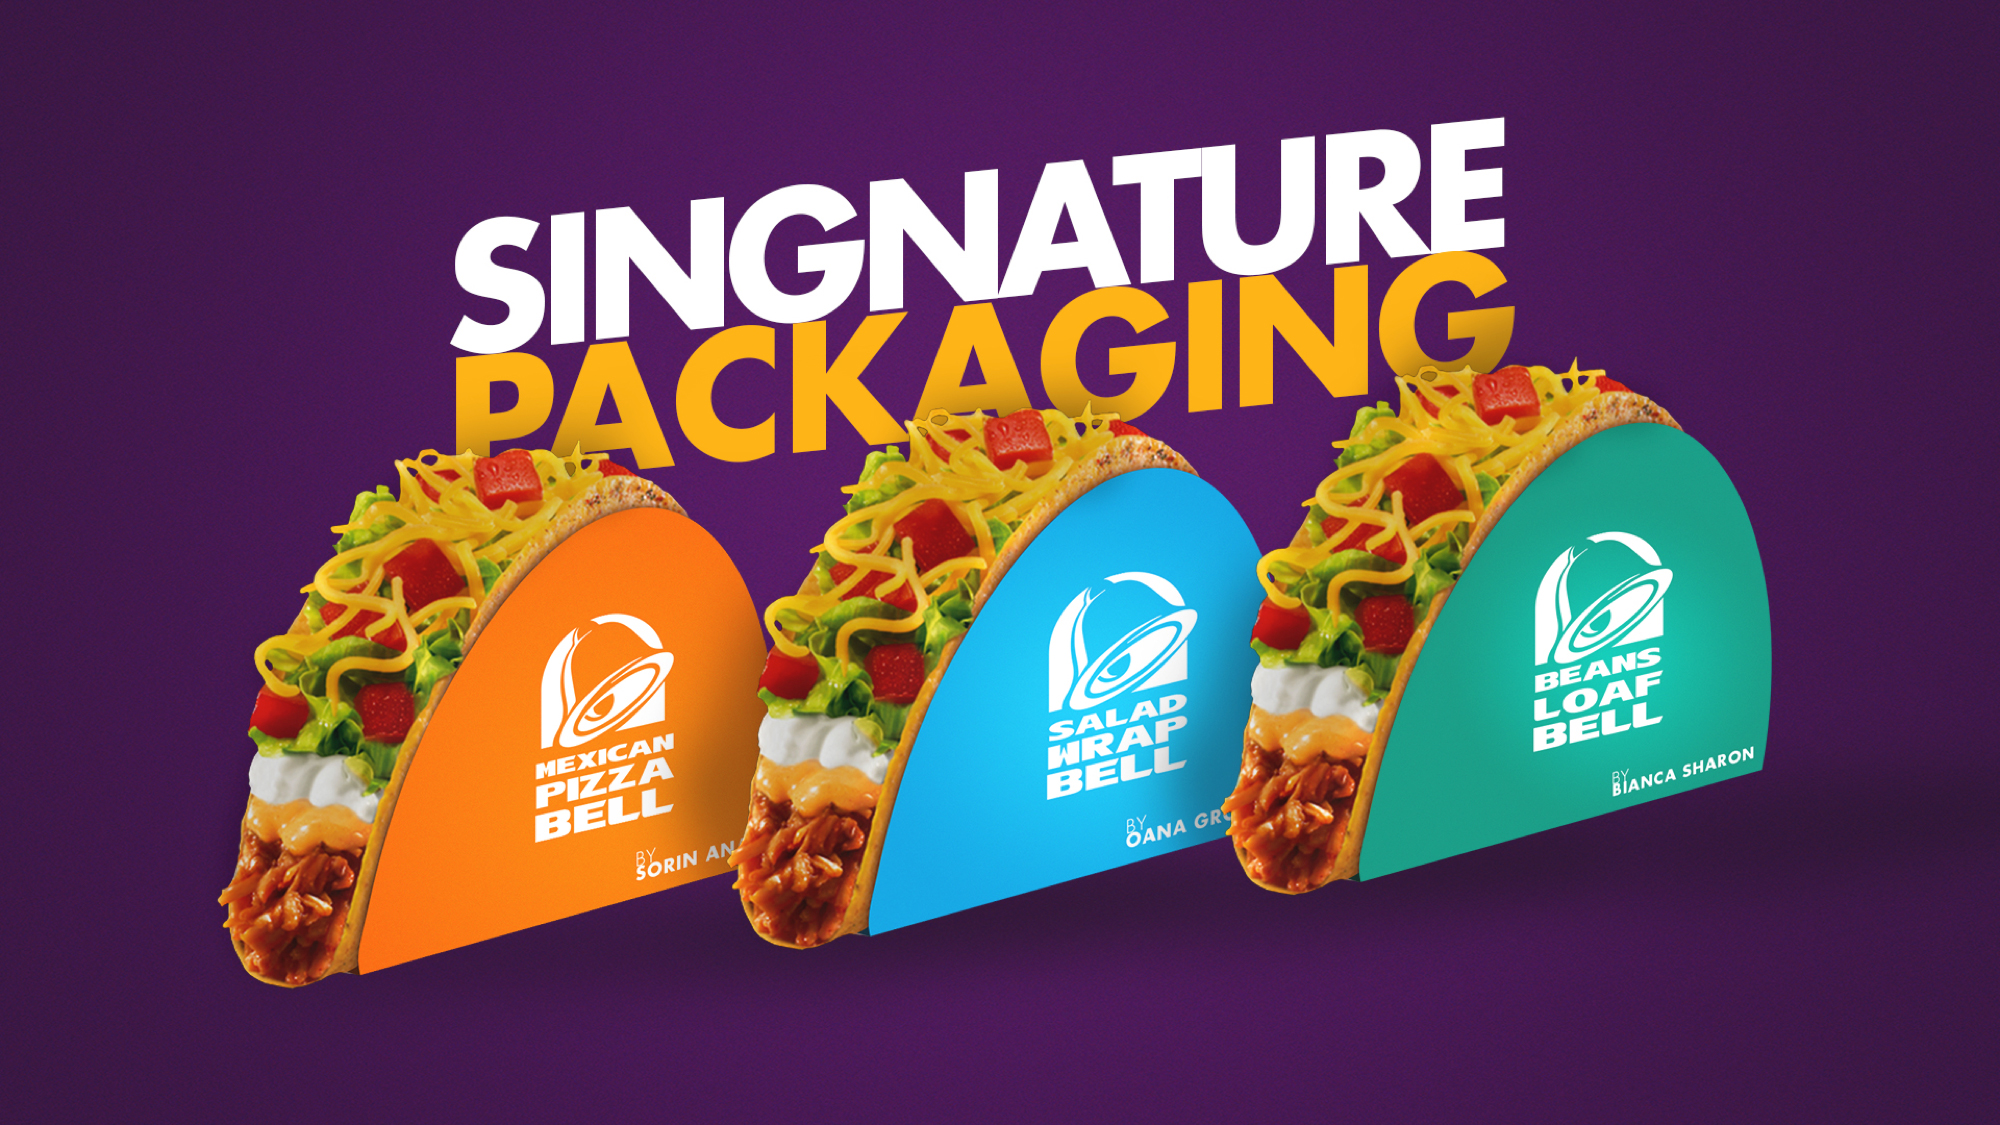 Taco-bell-packaging.jpg